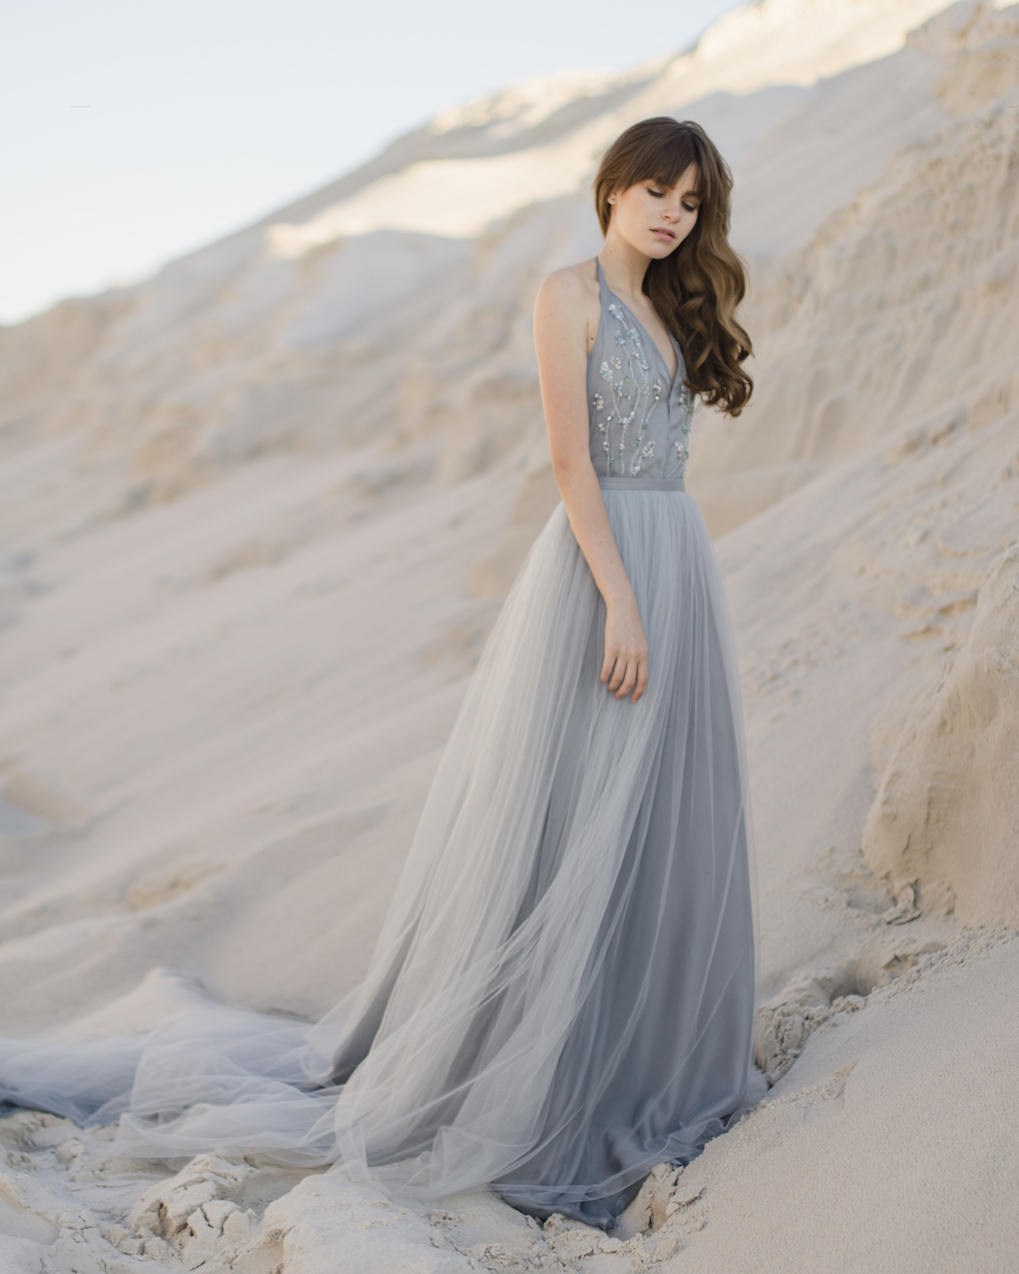 Tulle wedding skirt, bridal blue skirt.jpg